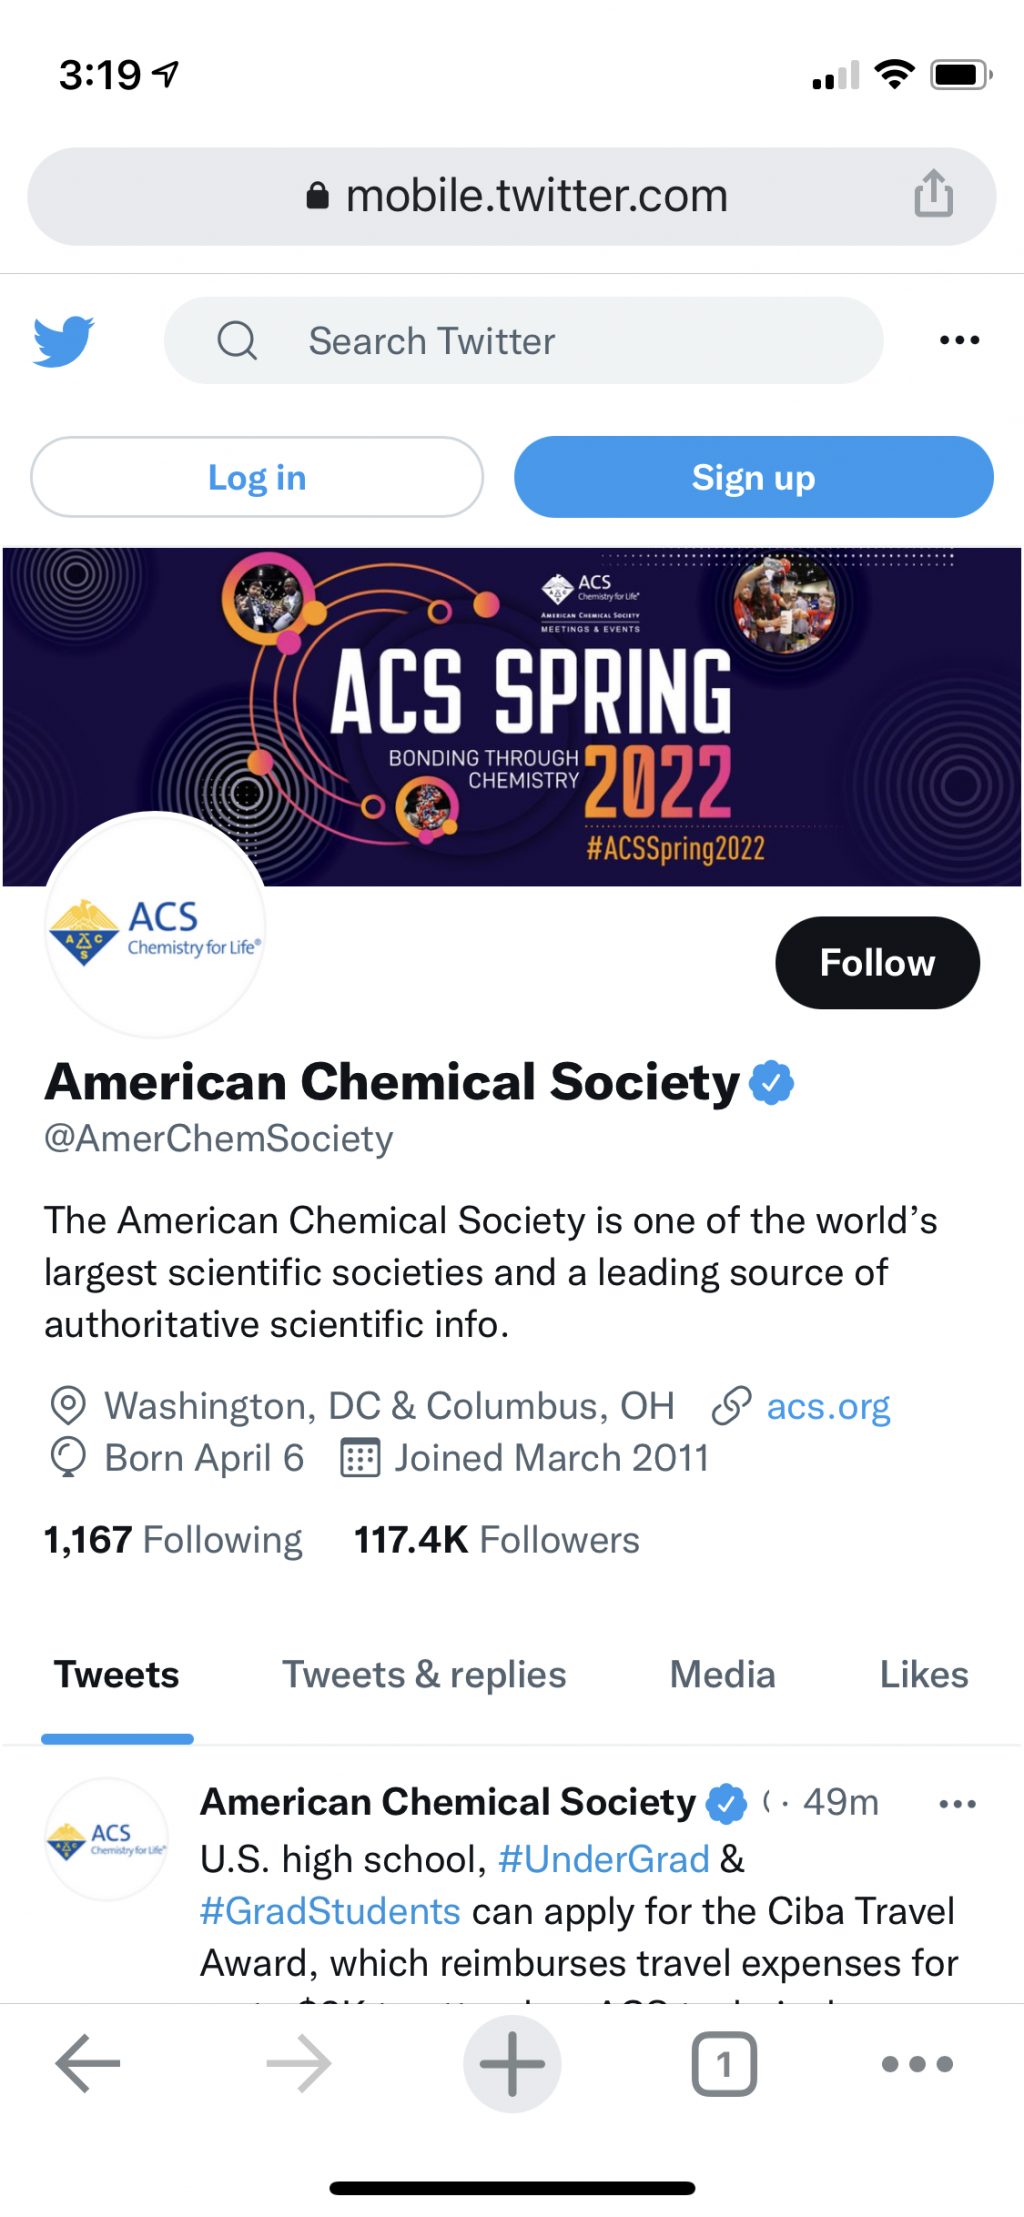 Twitter cover included in these social media graphics.